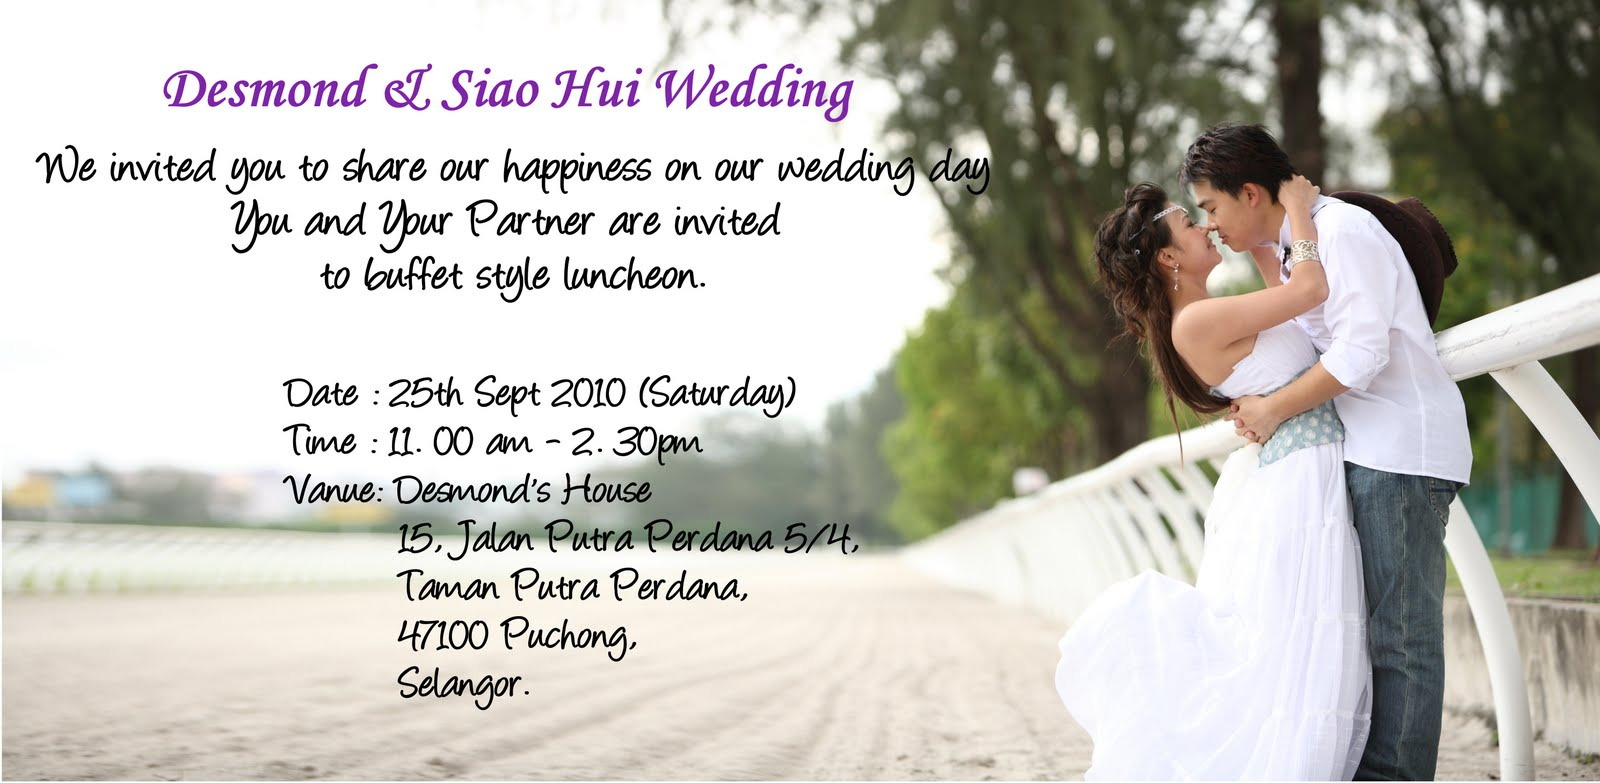 E Card Wedding Invitation: D&H Wedding: E-Invitation Card For Buffet Luncheon